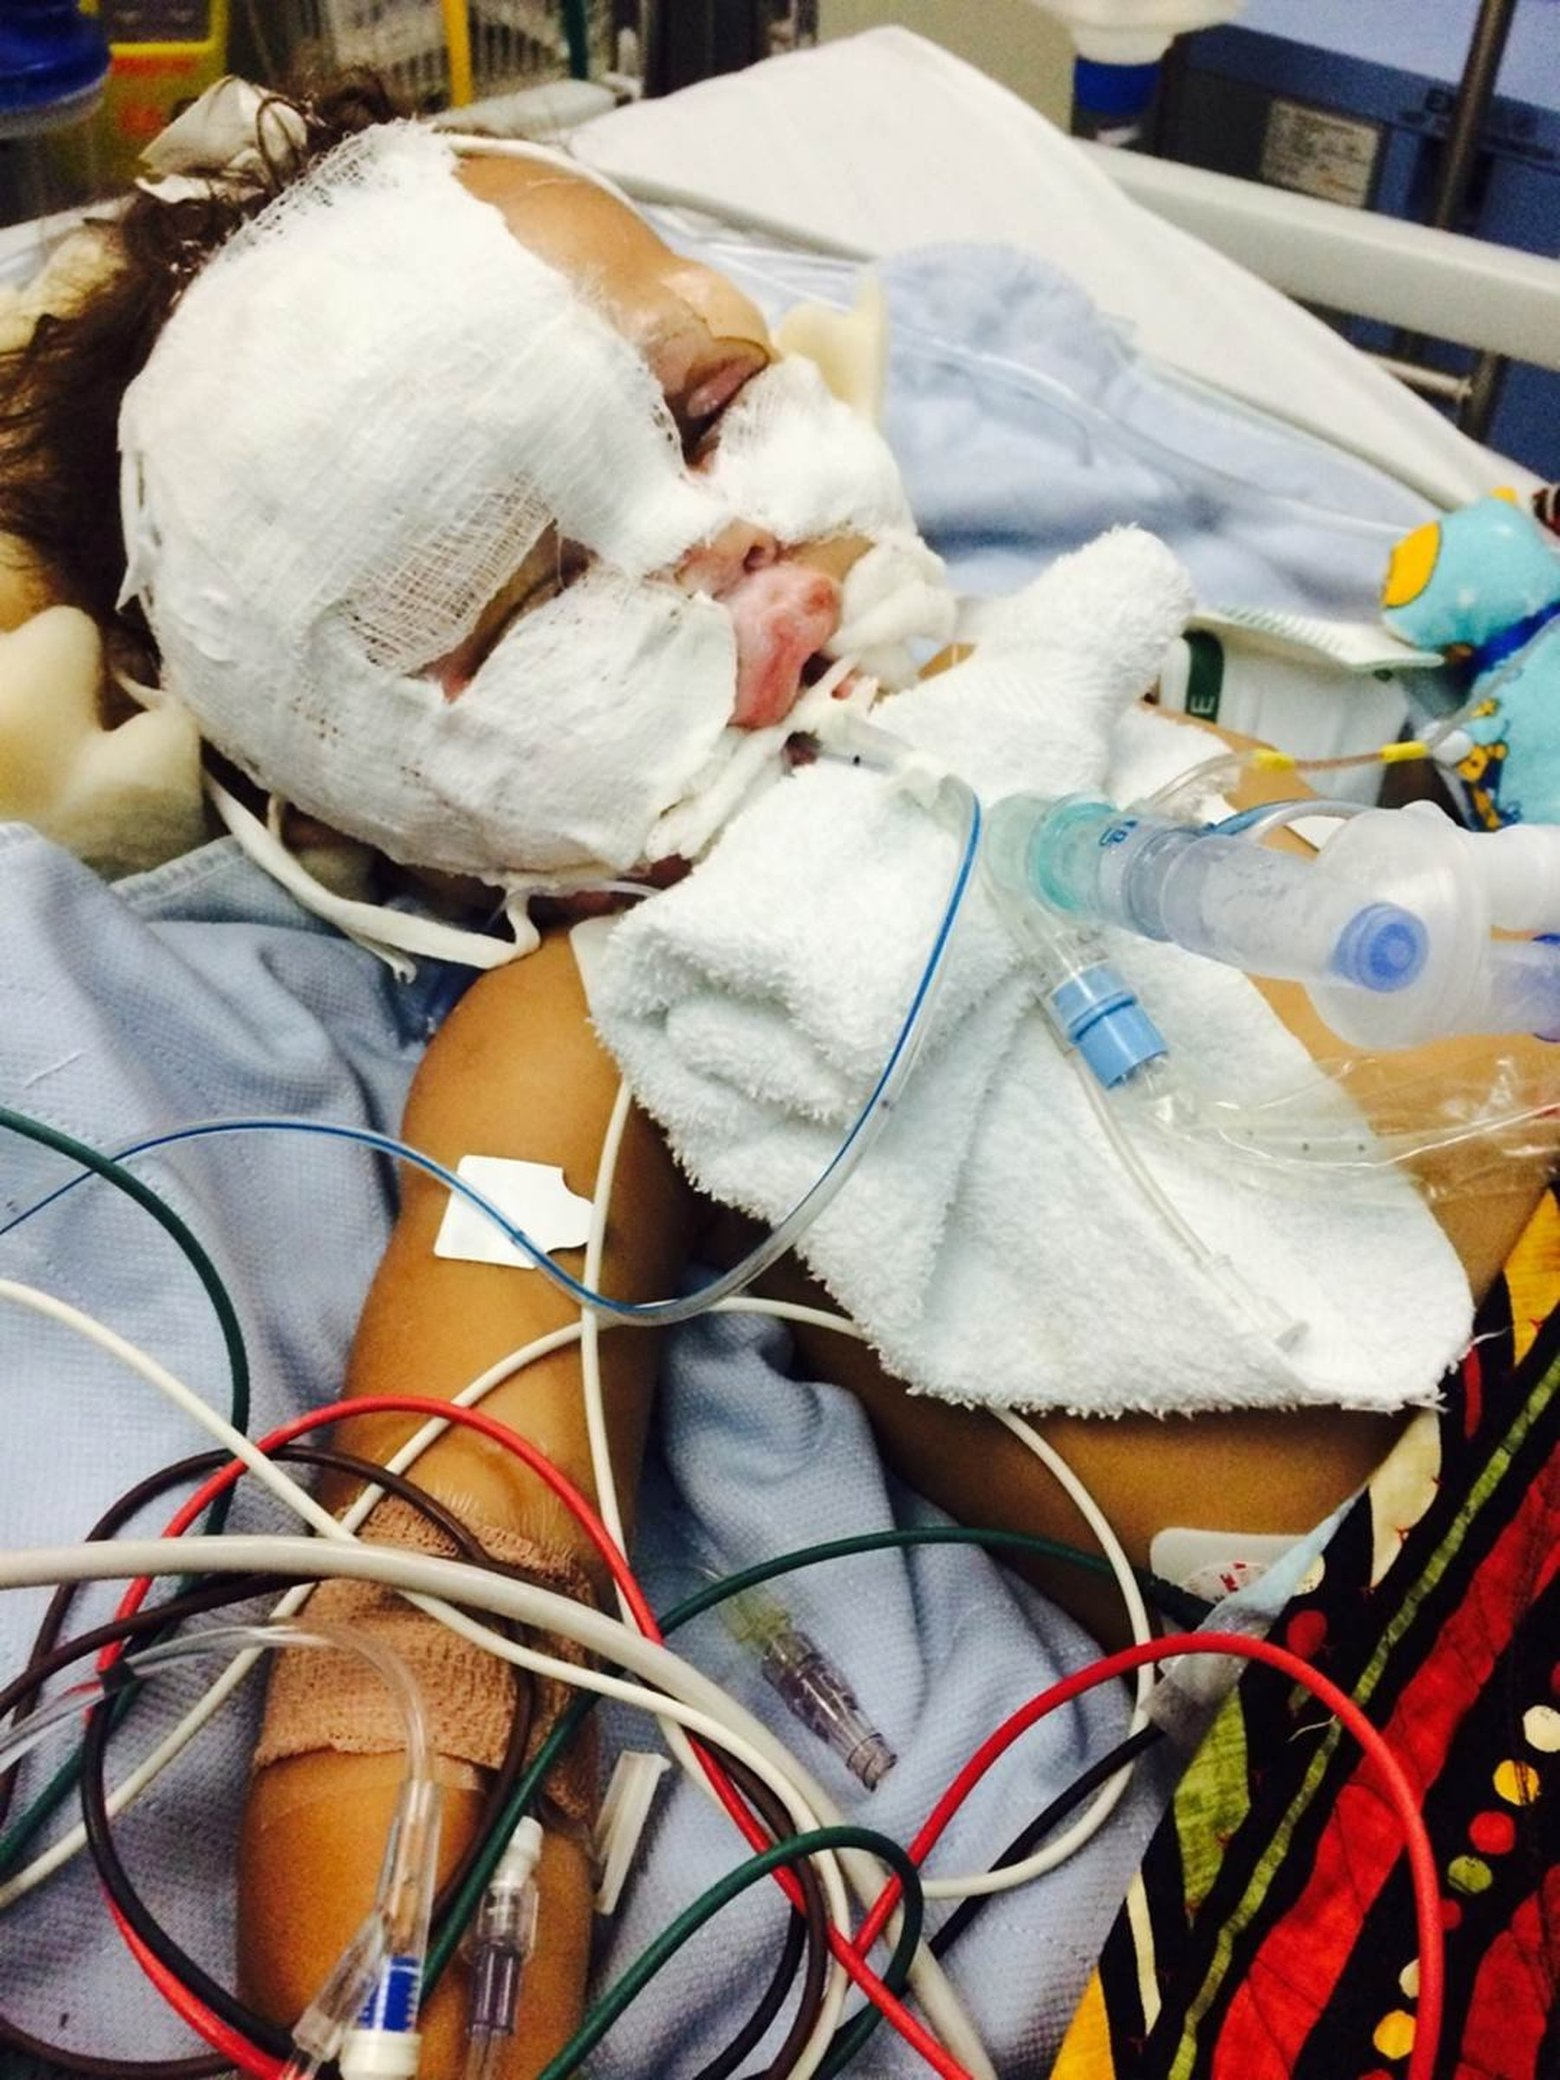 Madigan Army Medical Center Won't Appeal $12.3M Verdict for Surgery That Burned Child